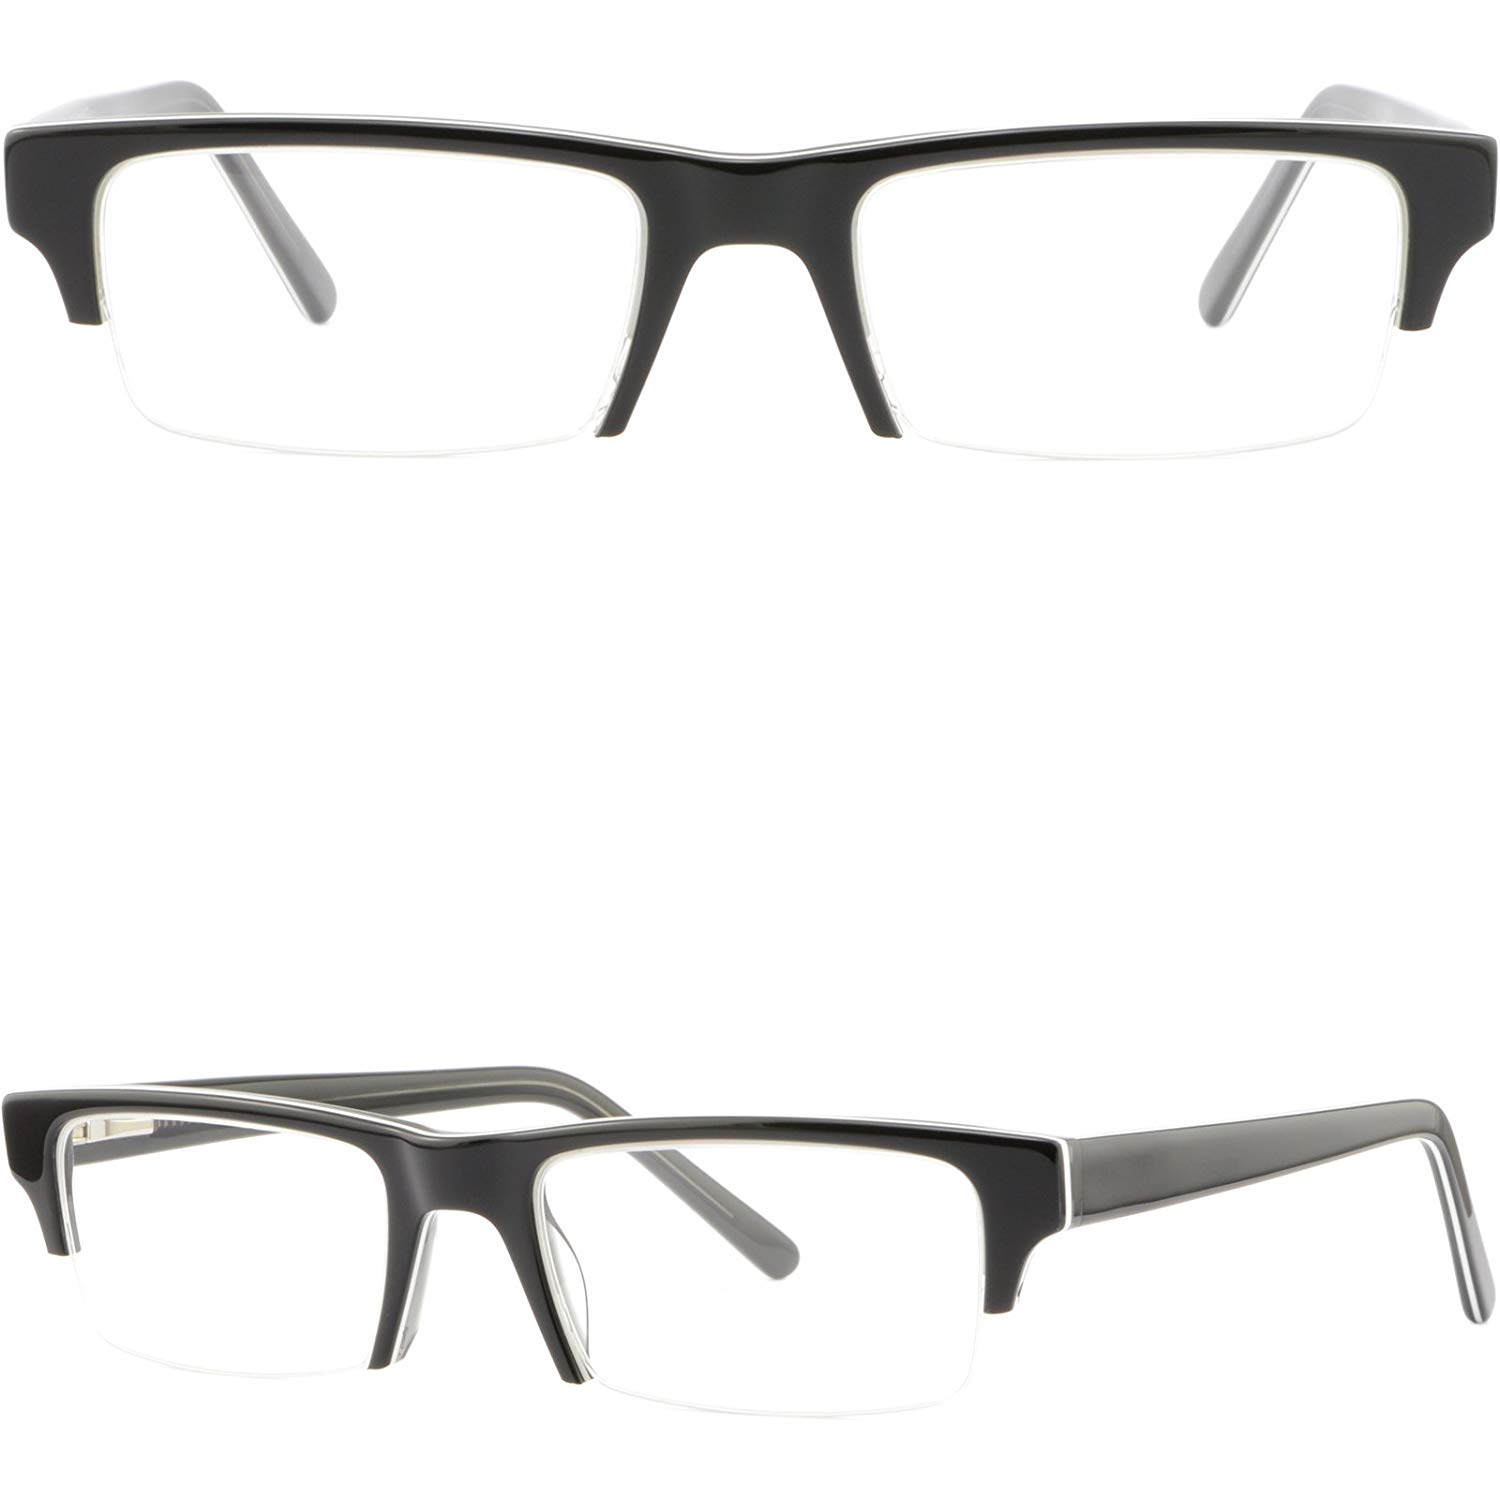 e0b86544734 Get Quotations · Half Rim Plastic Frames Spring Hinges Mens Womens  Prescription Eye Glasses Black